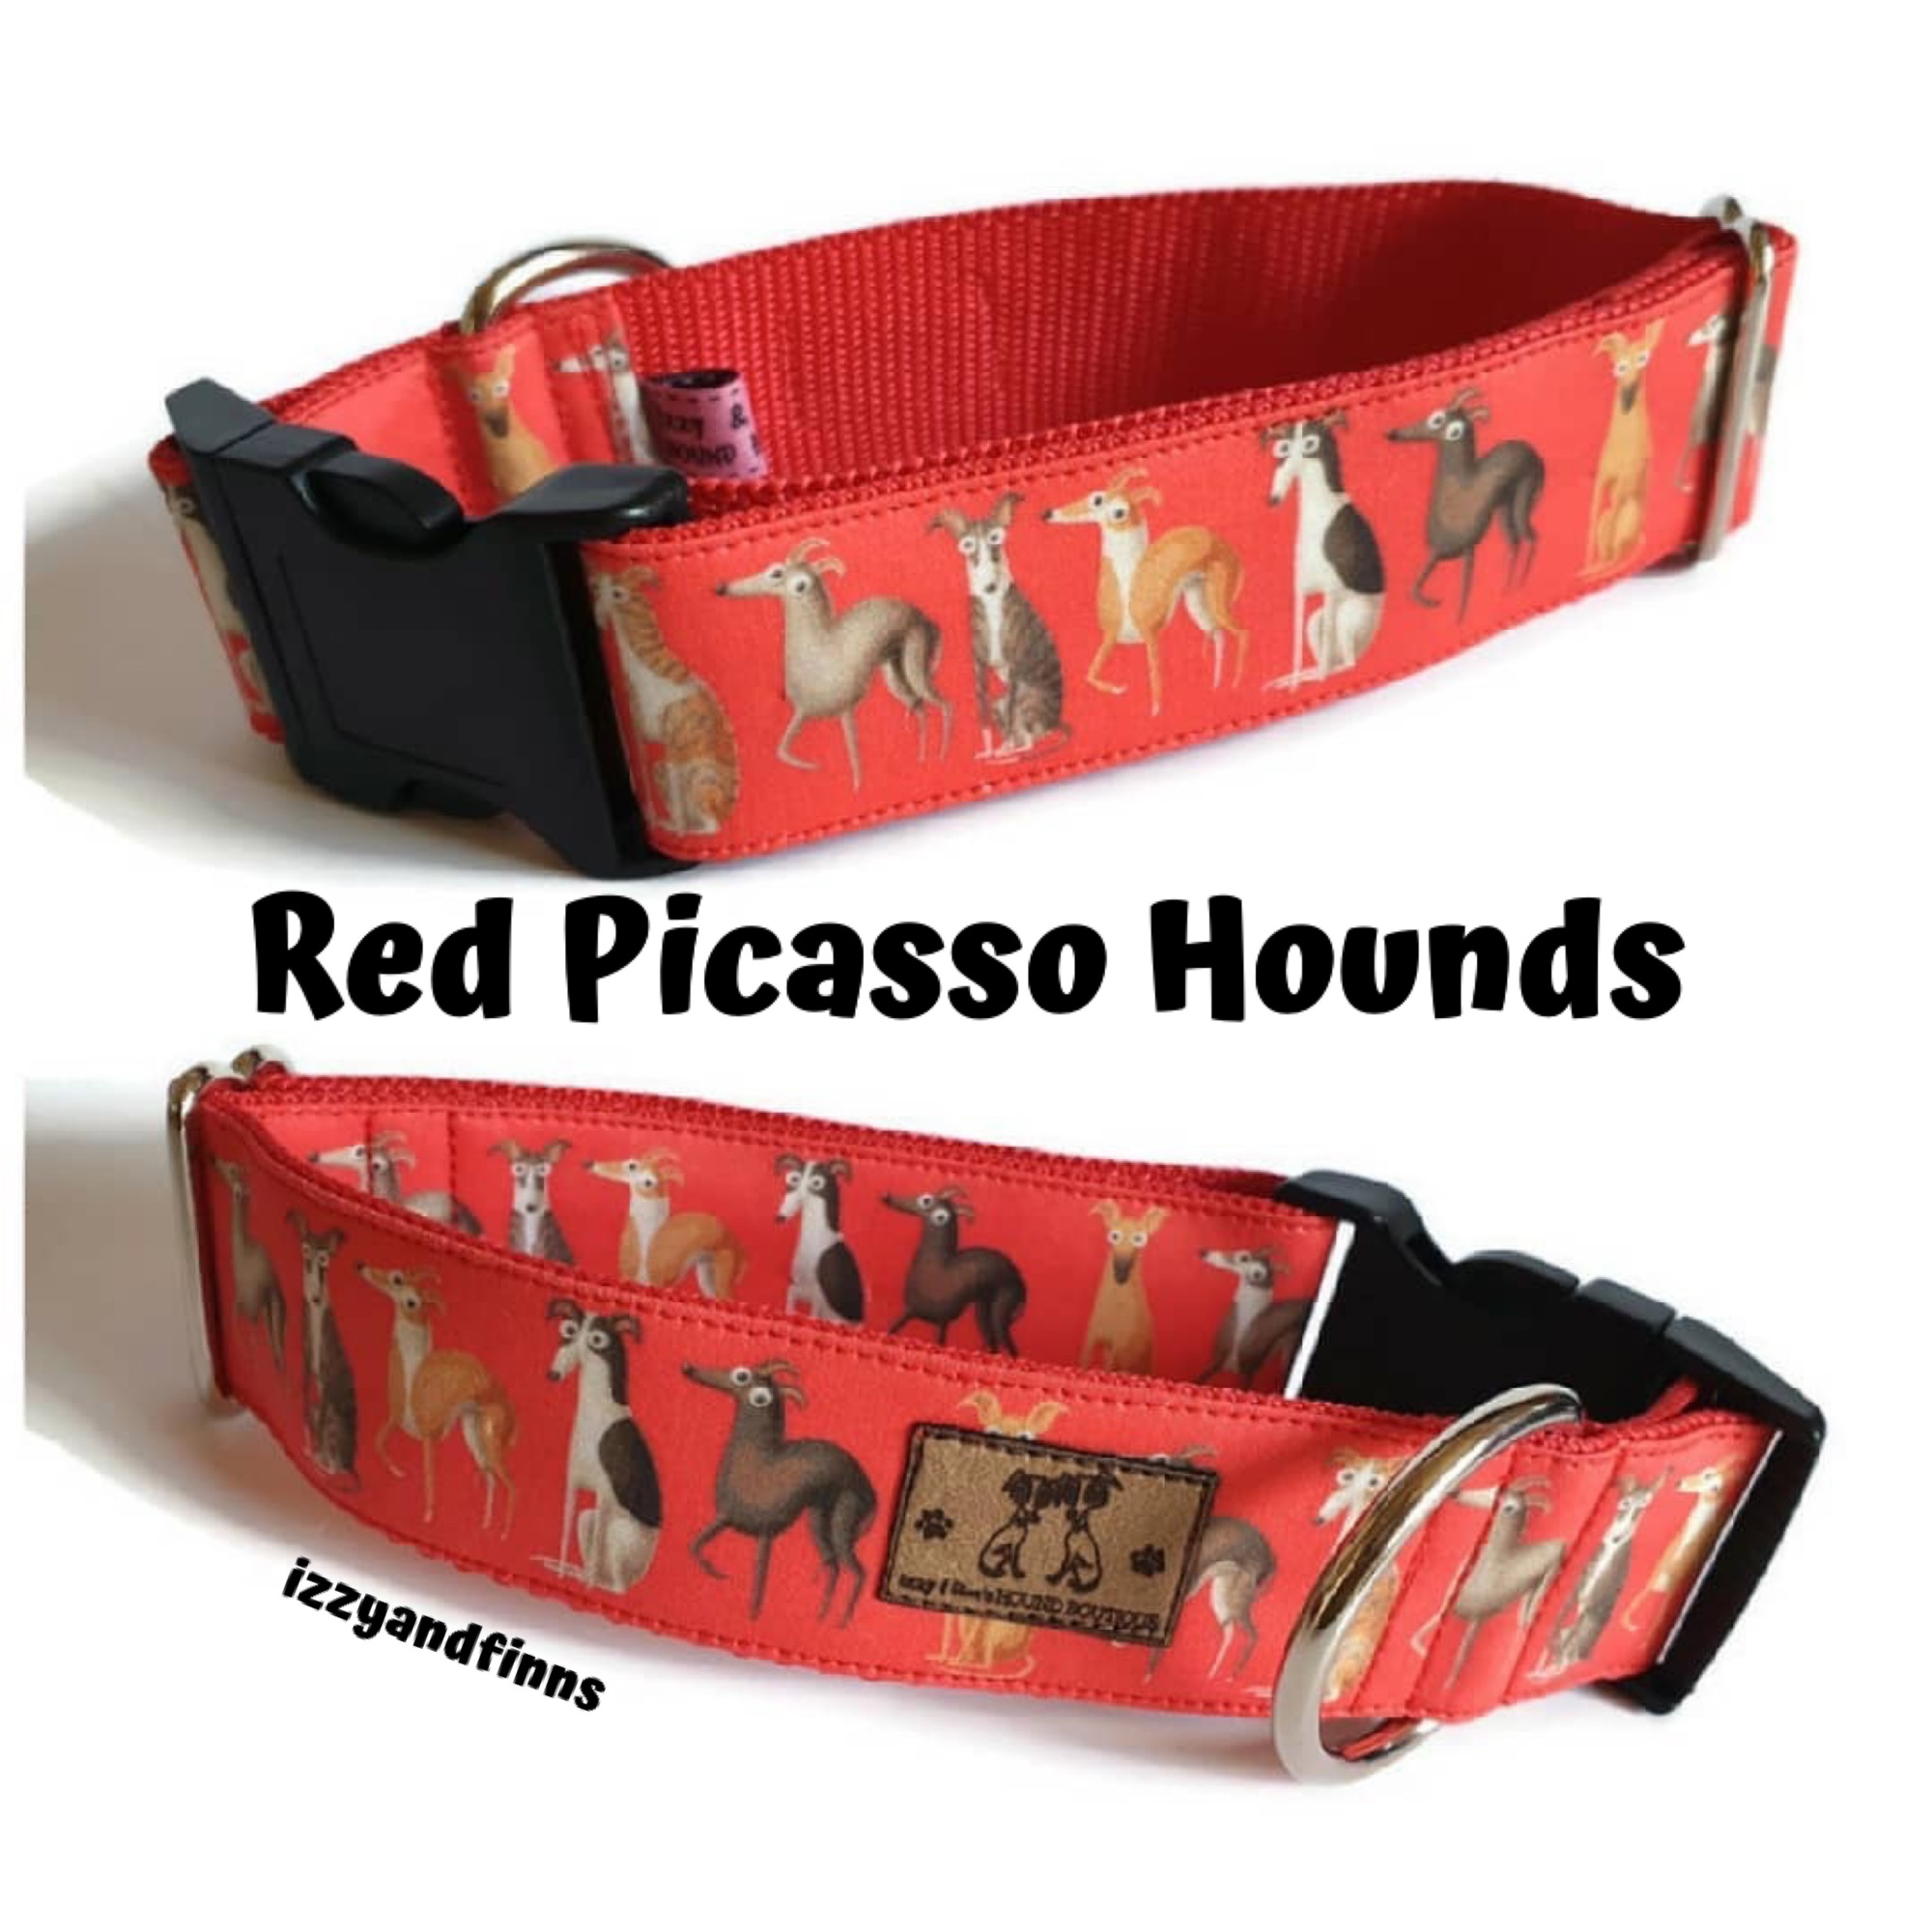 Red Picasso Hounds